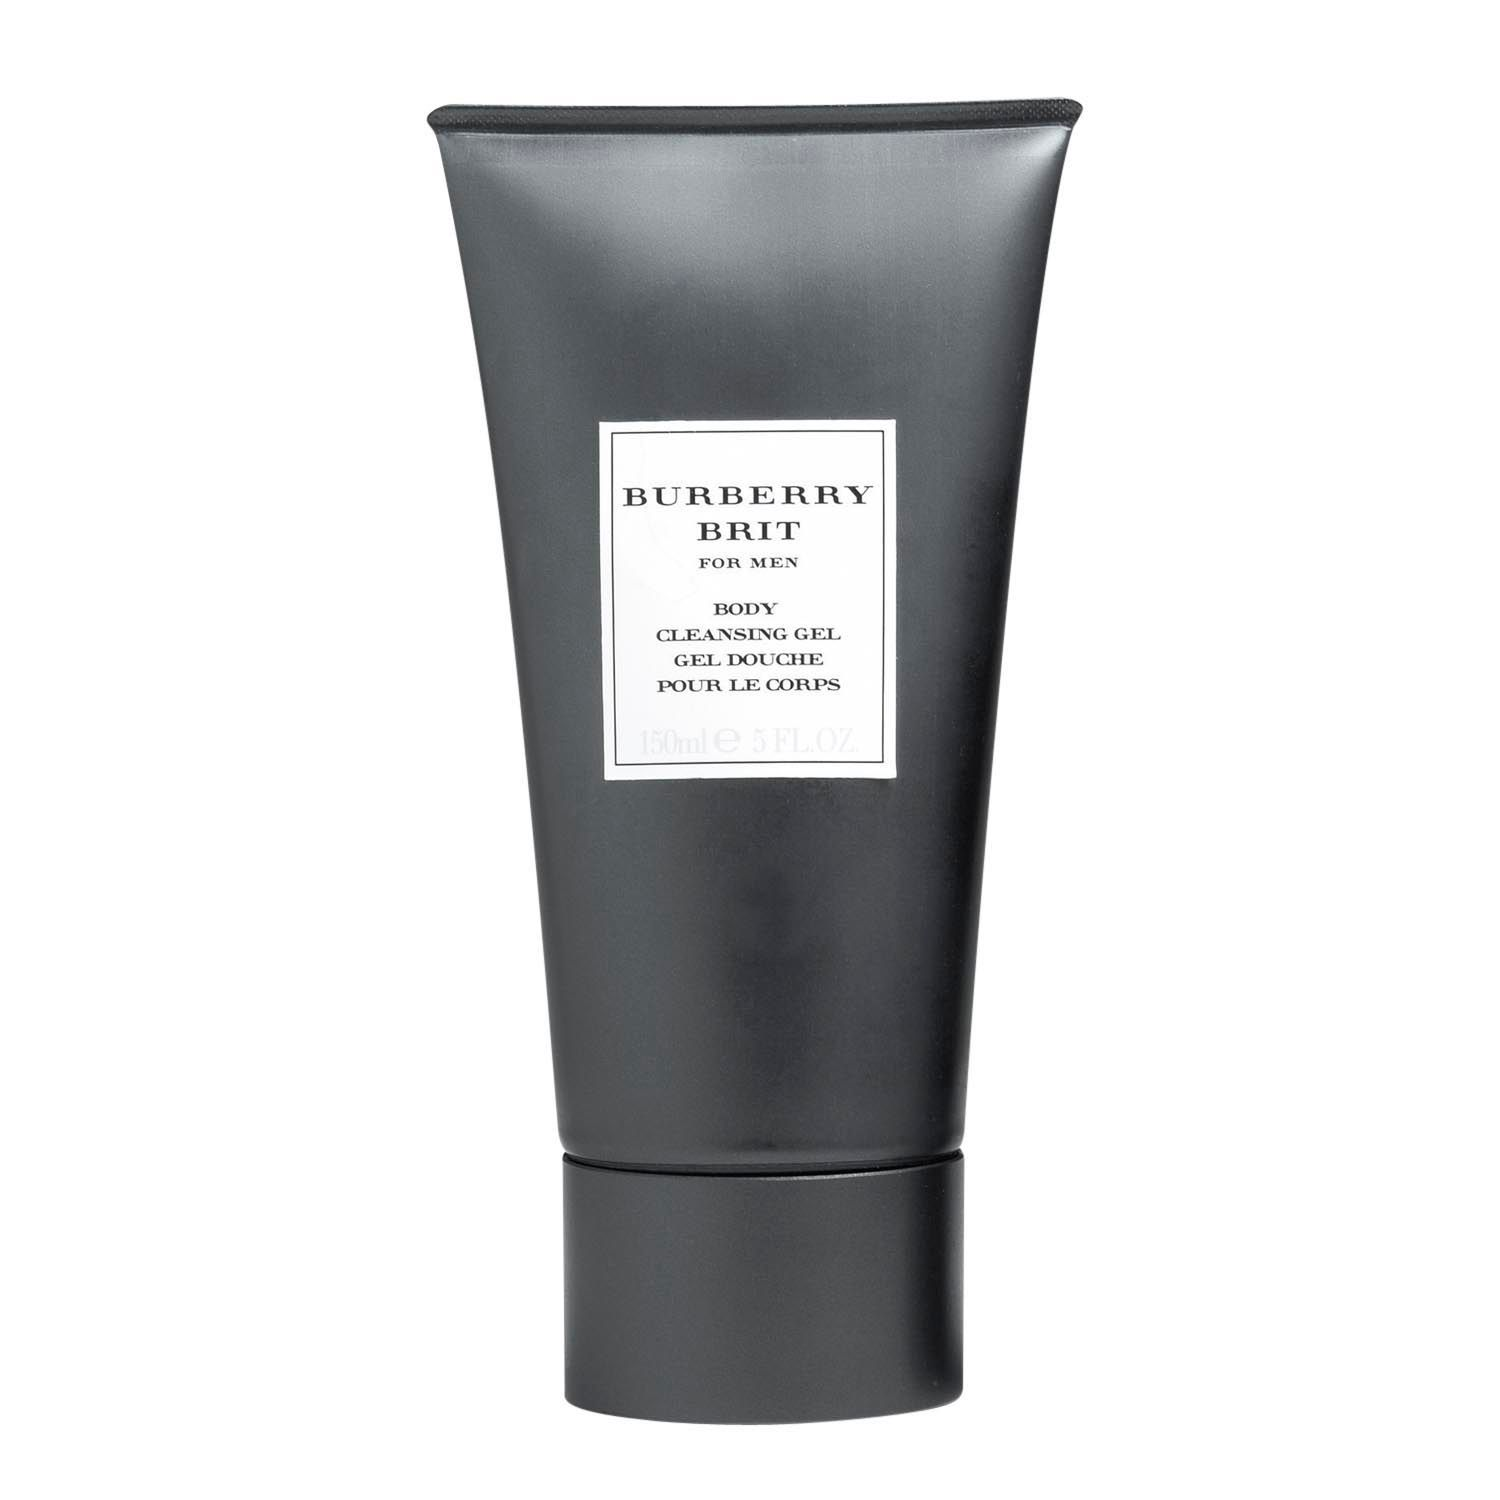 150ml Brit for men body cleansing gel